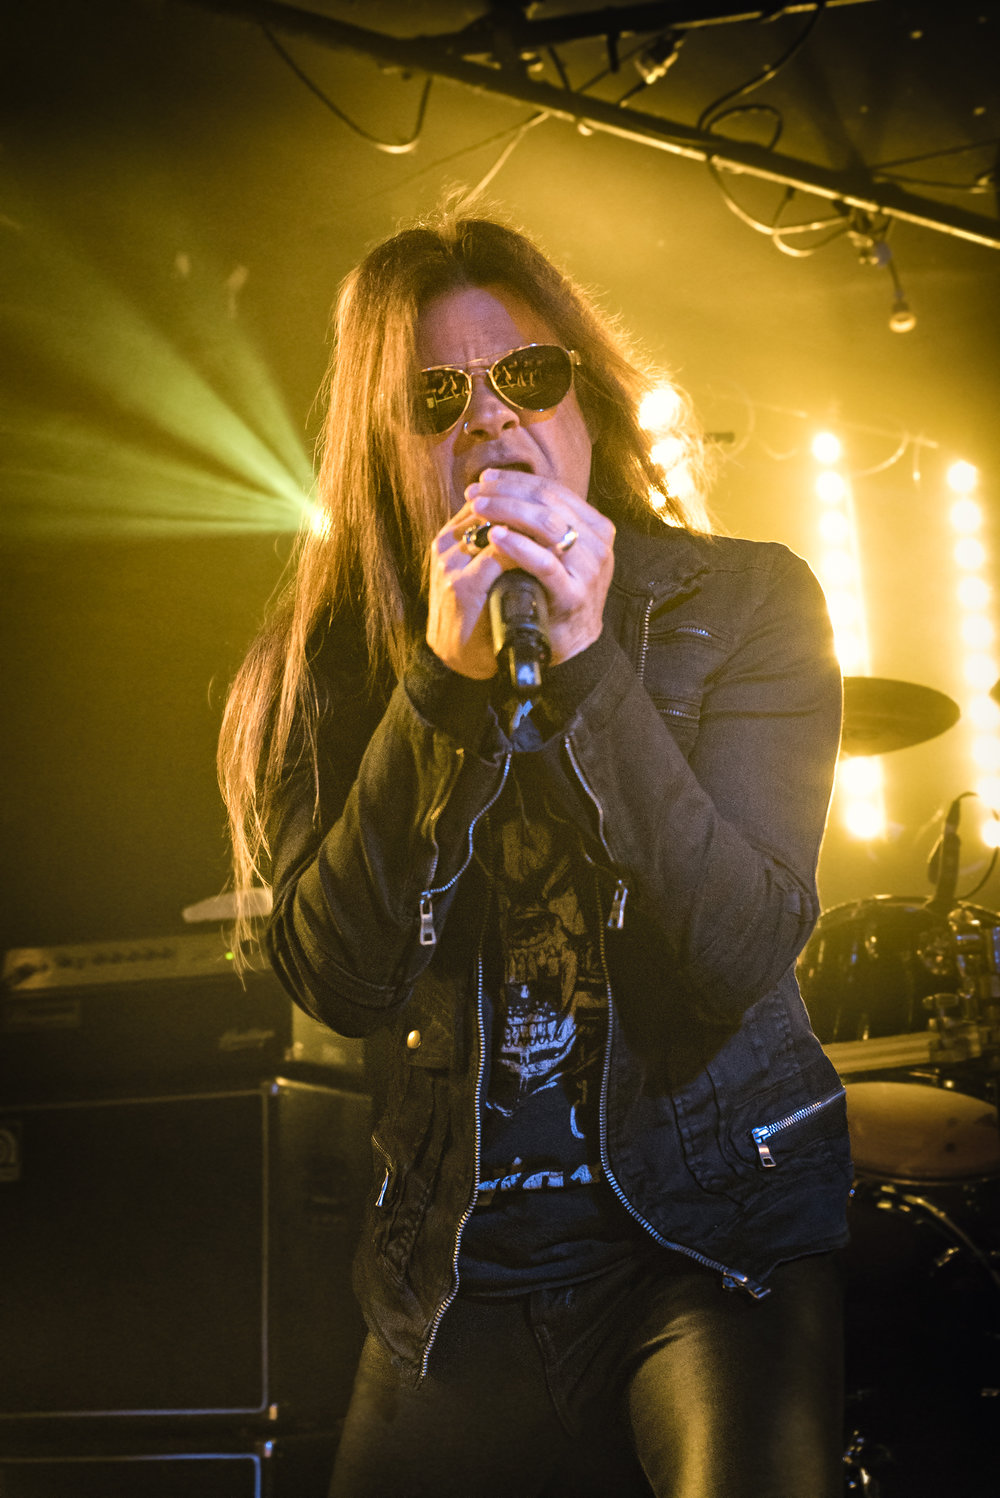 queensryche - melbourne - 2016 - paul tadday photography - 1.jpg